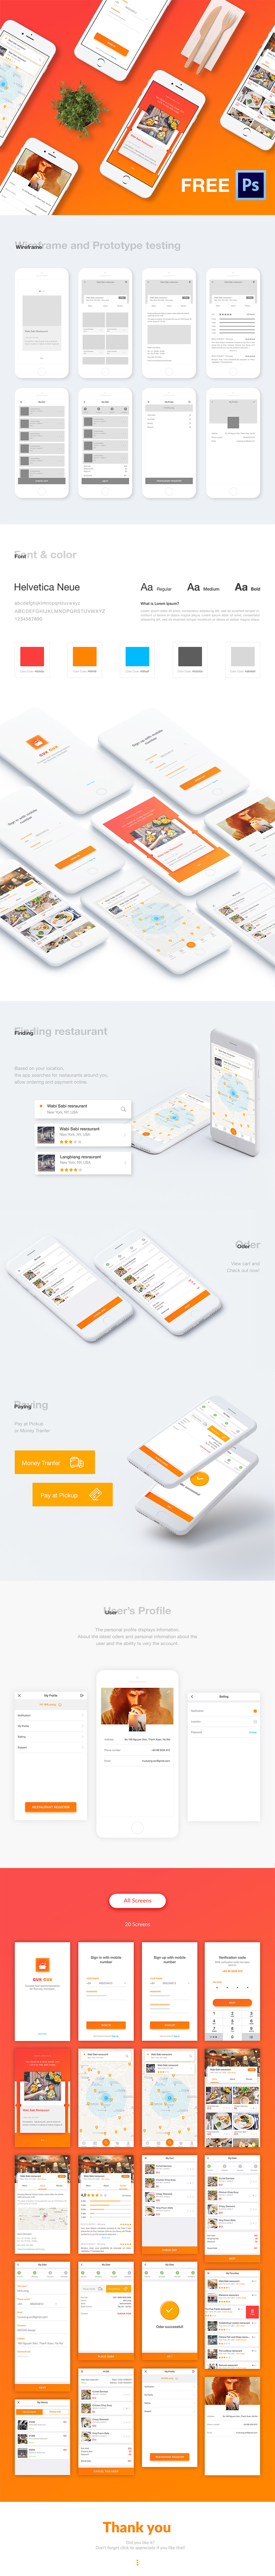 Cook App Design Free UI Kit - 20 free screens